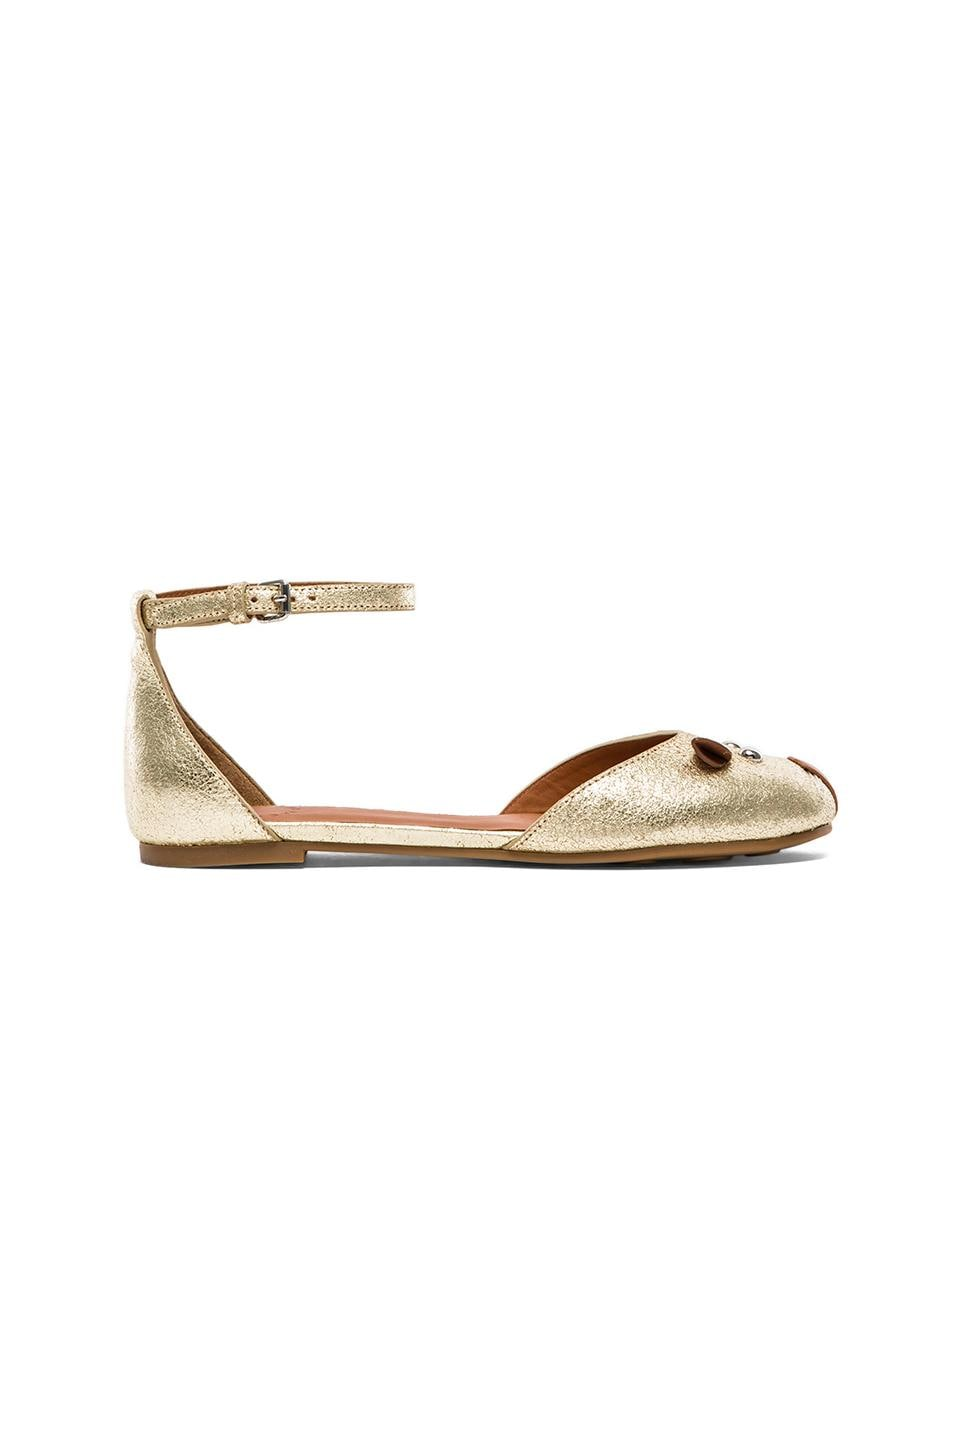 Marc by Marc Jacobs Mouse Ballerina Flat in Gold